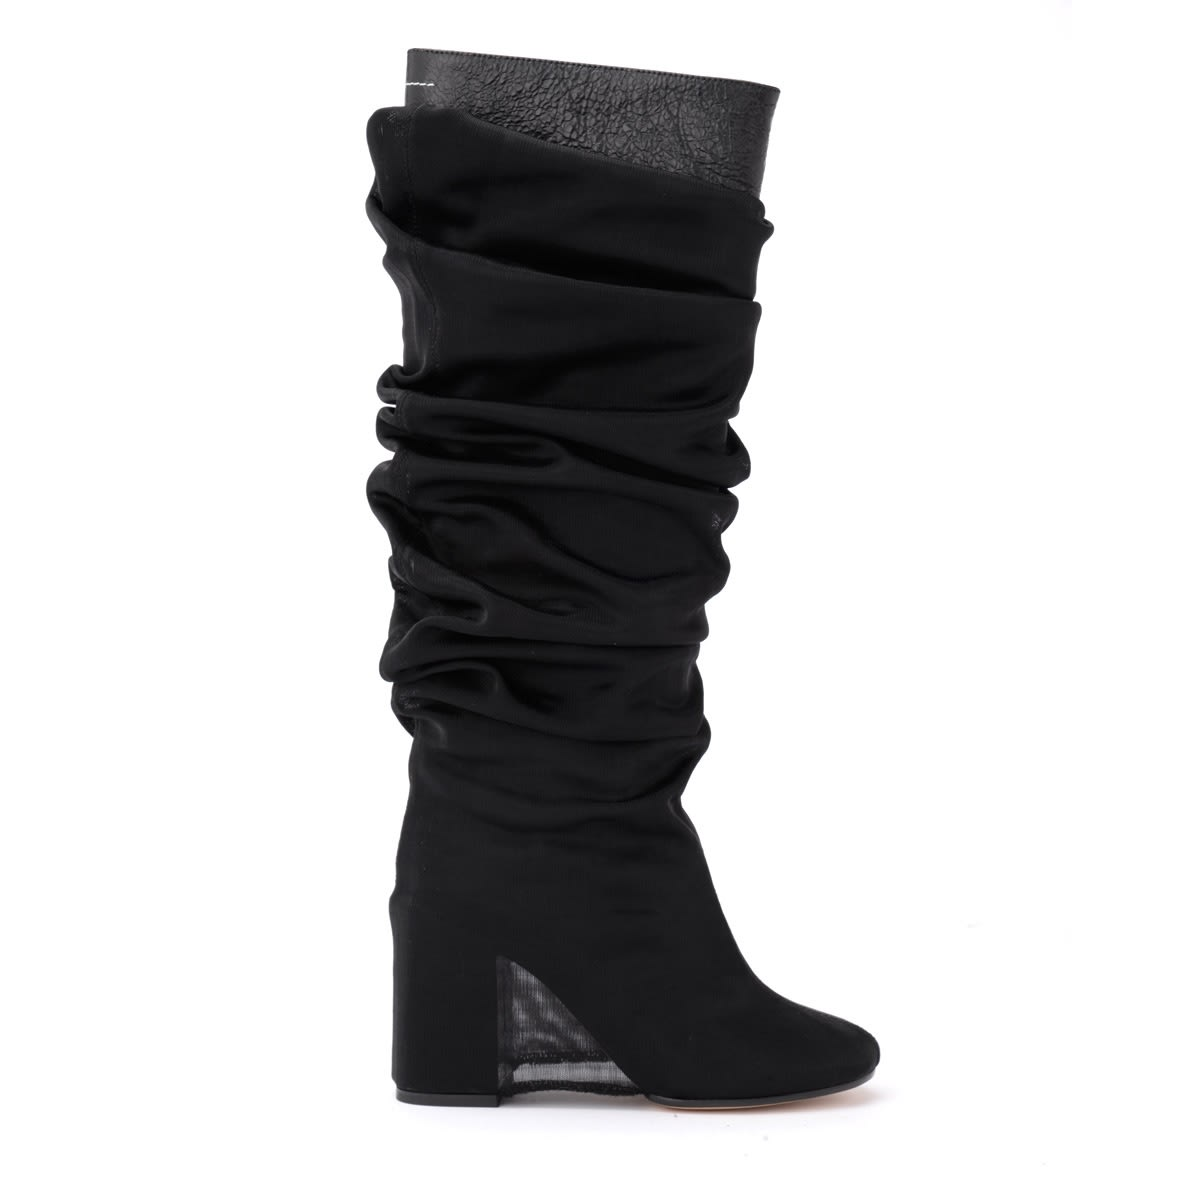 Mm6 Maison Margiela Boot In Black Leather With Sheer Covering